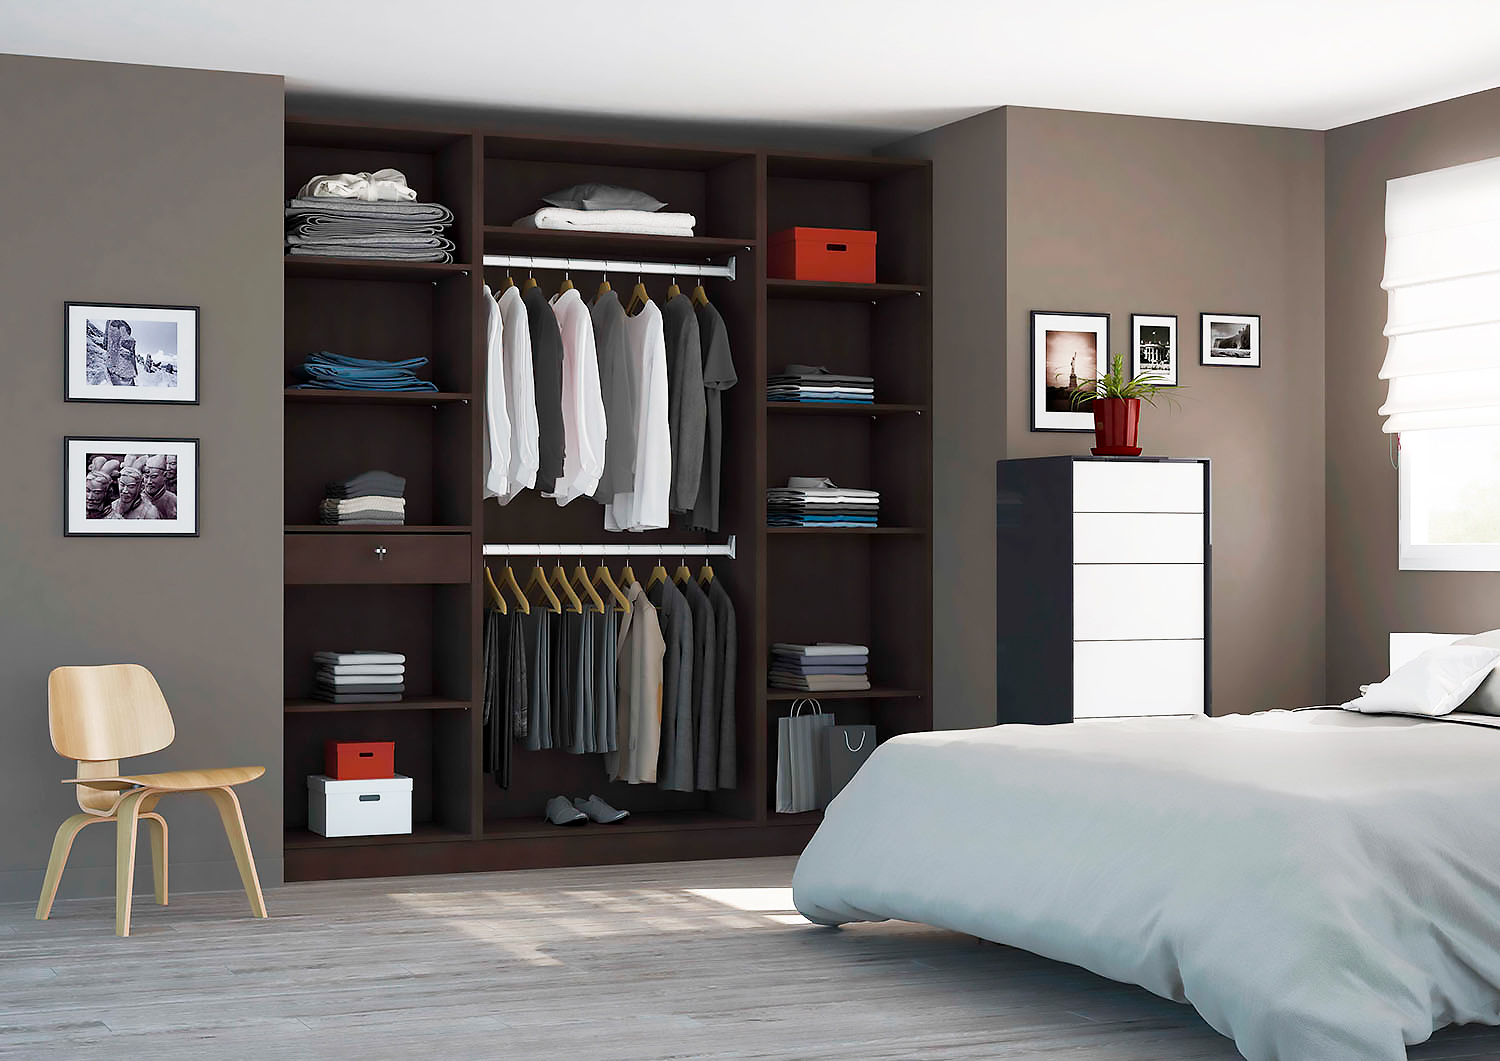 faire un dressing dans un placard amazing full size of design duintrieur de maison chambre avec. Black Bedroom Furniture Sets. Home Design Ideas